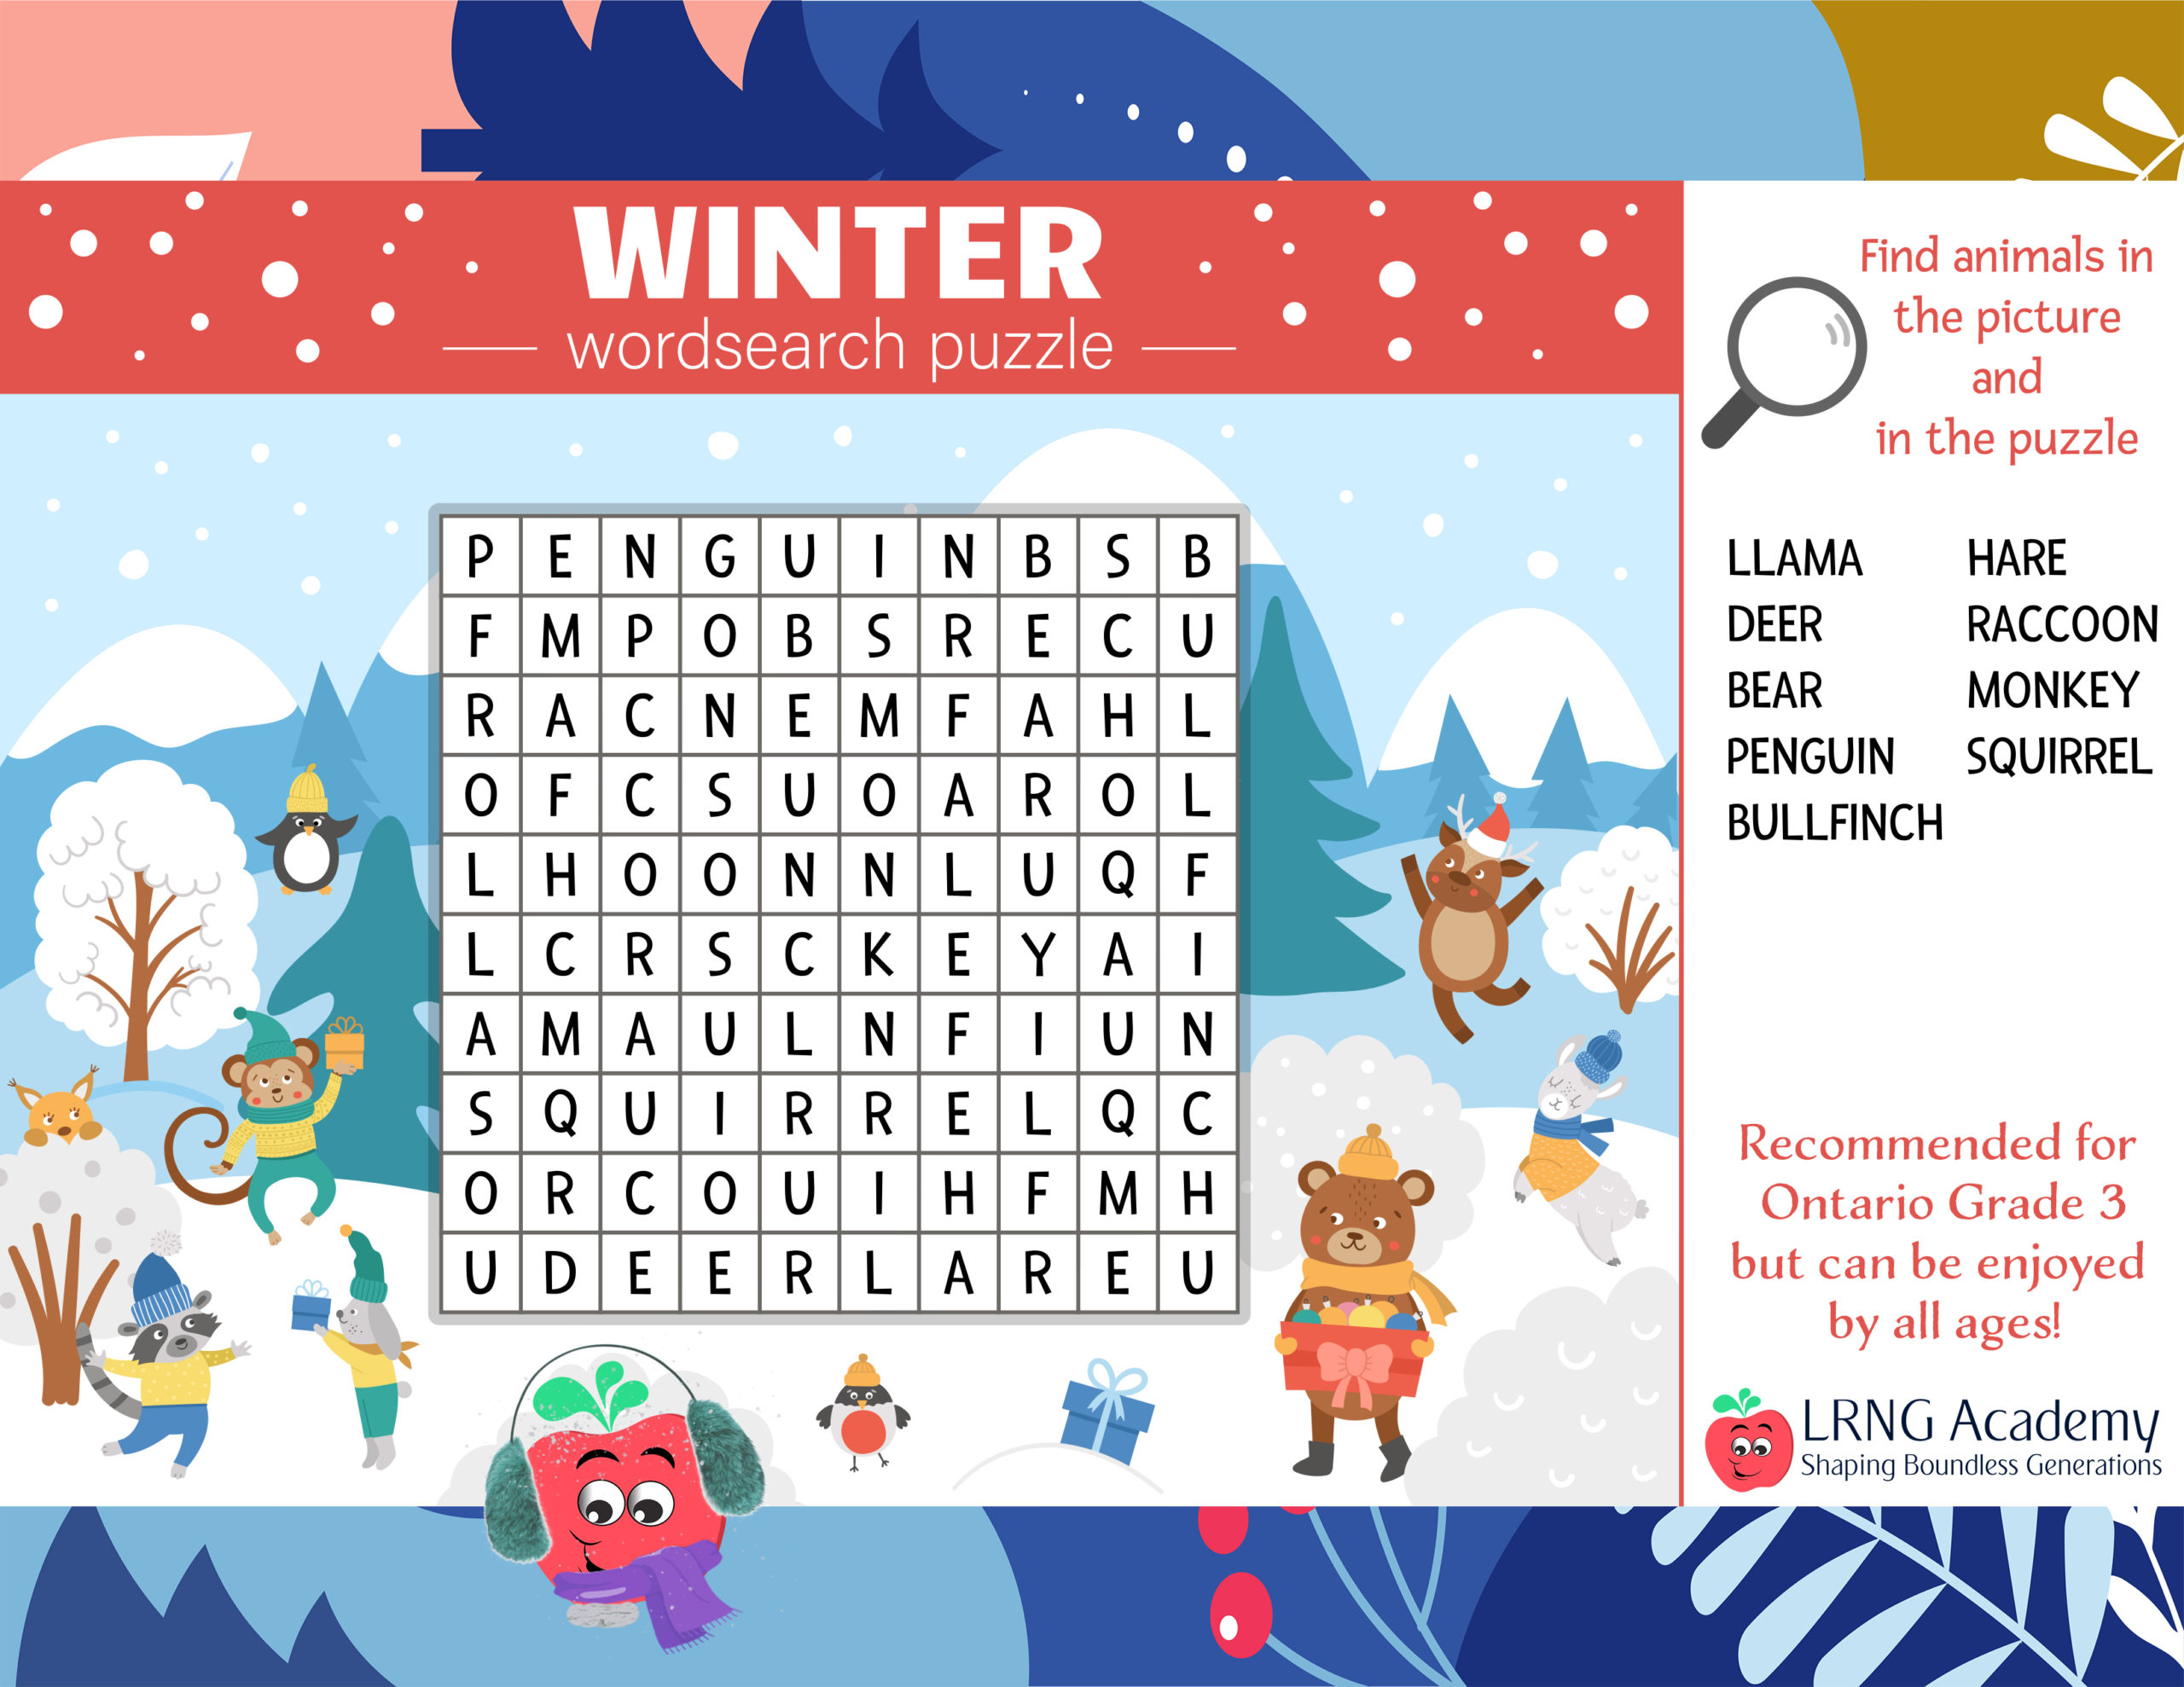 Winter Wordsearch Puzzle scaled - Appie Activities - LRNG Academy - Shaping Boundless Generations - Online Tutoring | Online Learning | eLearning | Virtual School | Tutoring Service | Virtual Learning